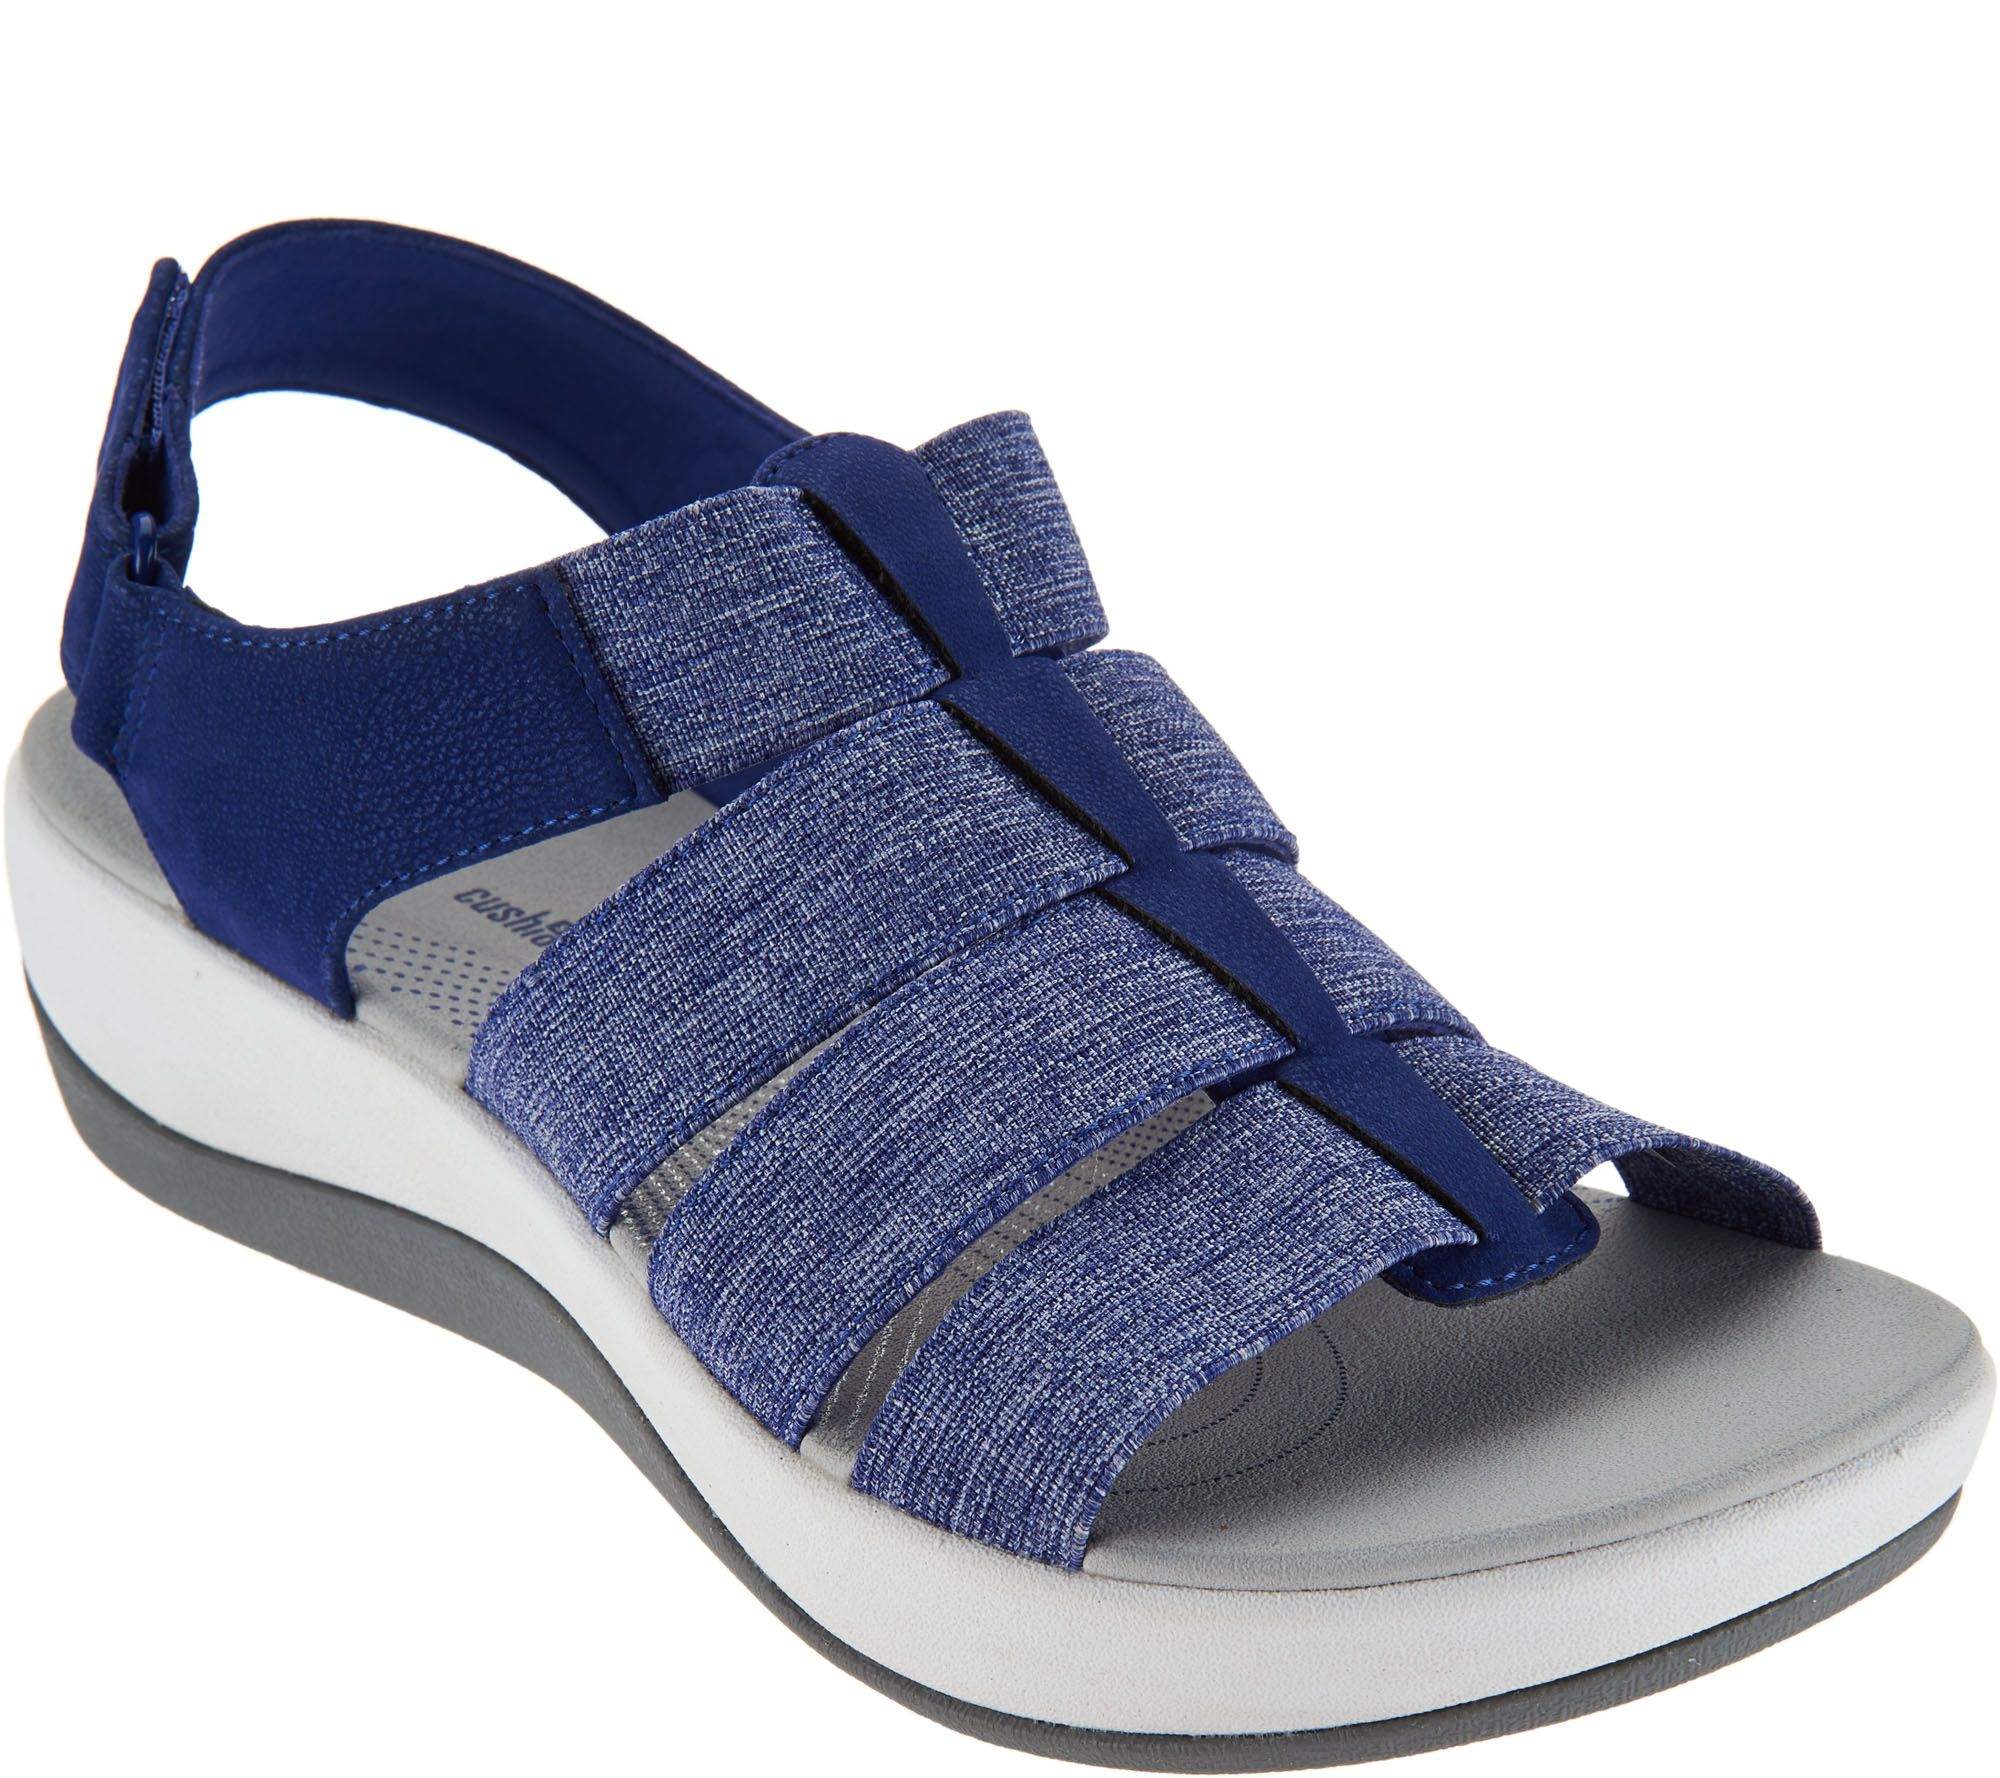 7880a40bf35 CLOUDSTEPPERS by Clarks Sport Sandals - Arla Shaylie - Page 1 — QVC.com